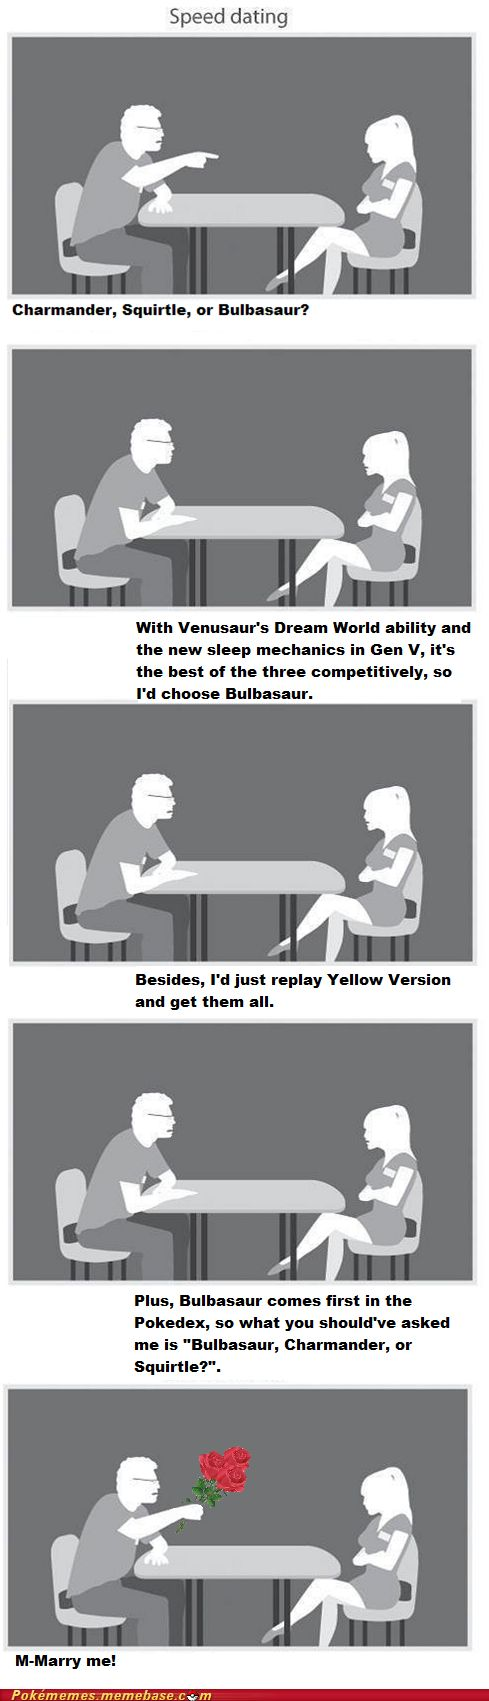 Speed dating original